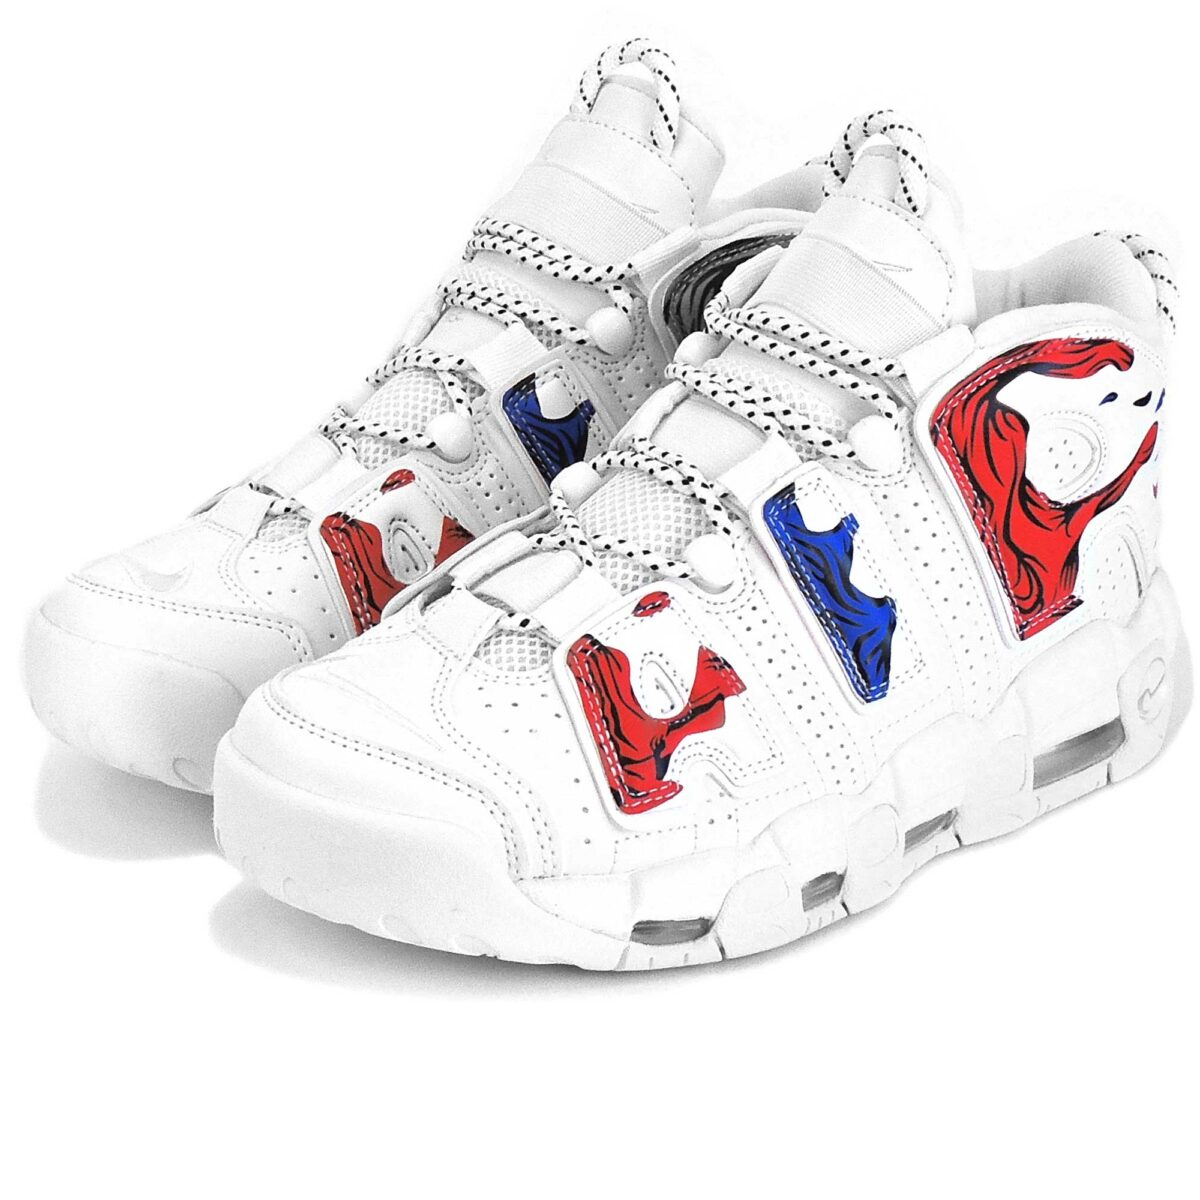 nike air more uptempo white red blue купить